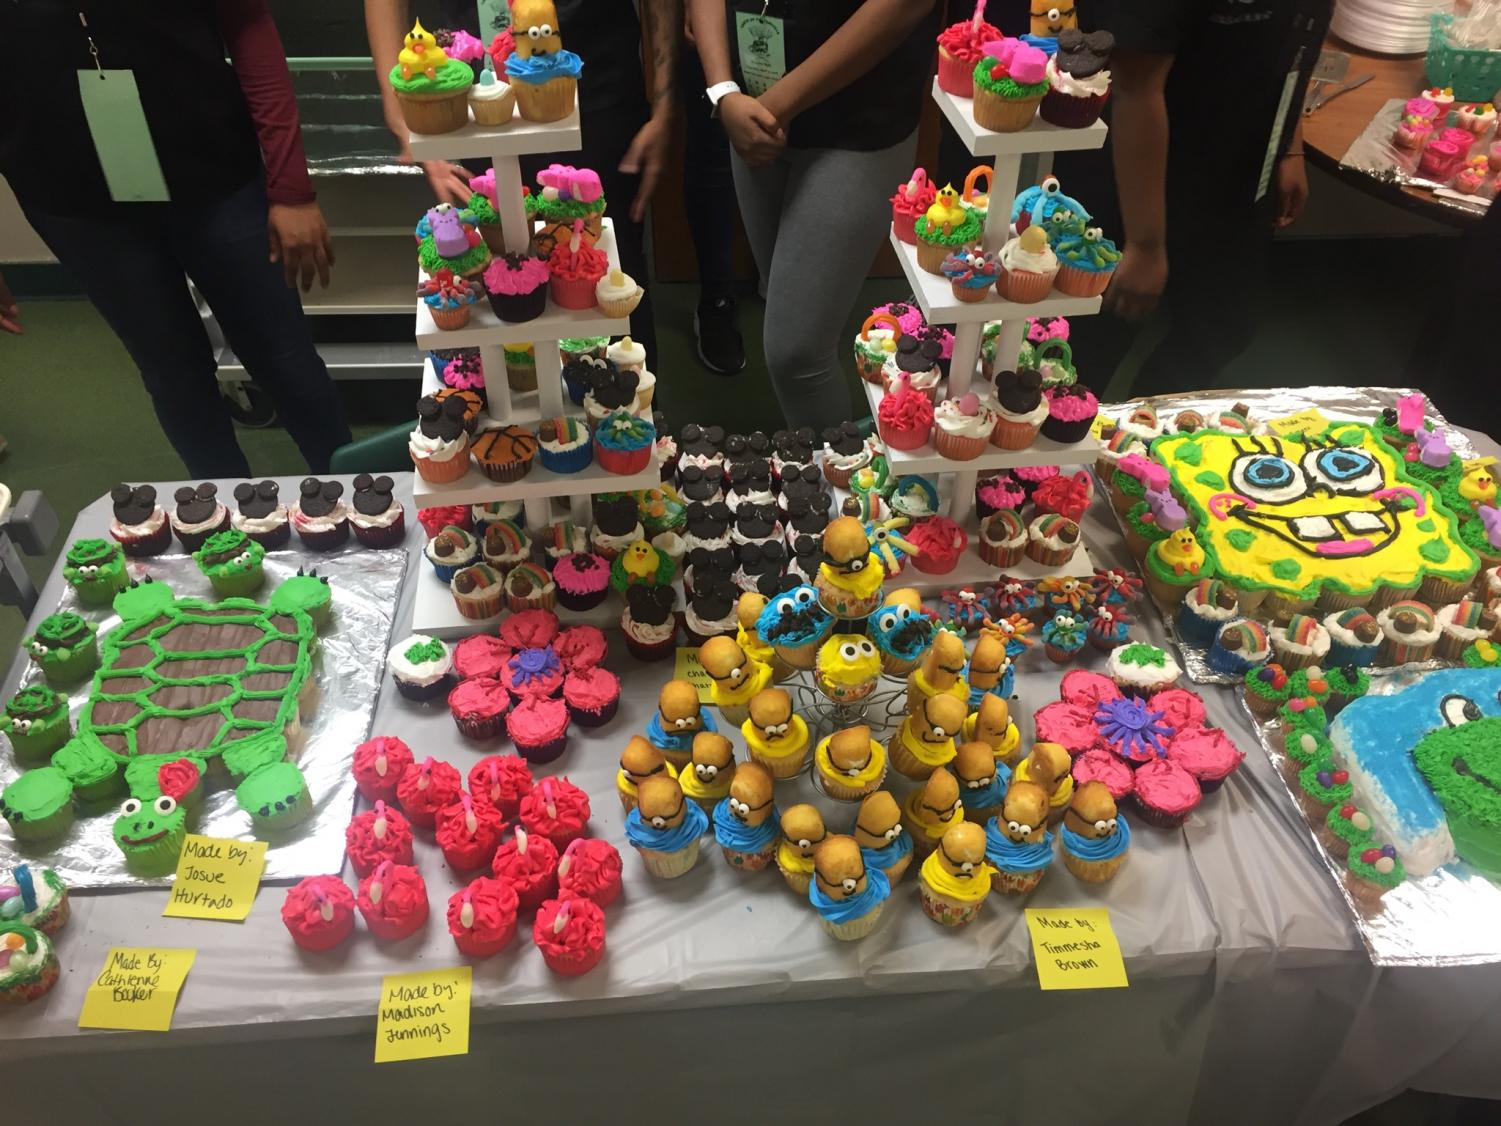 The Pattonville Culinary Arts students created desserts for the Taste of Pattonville event.